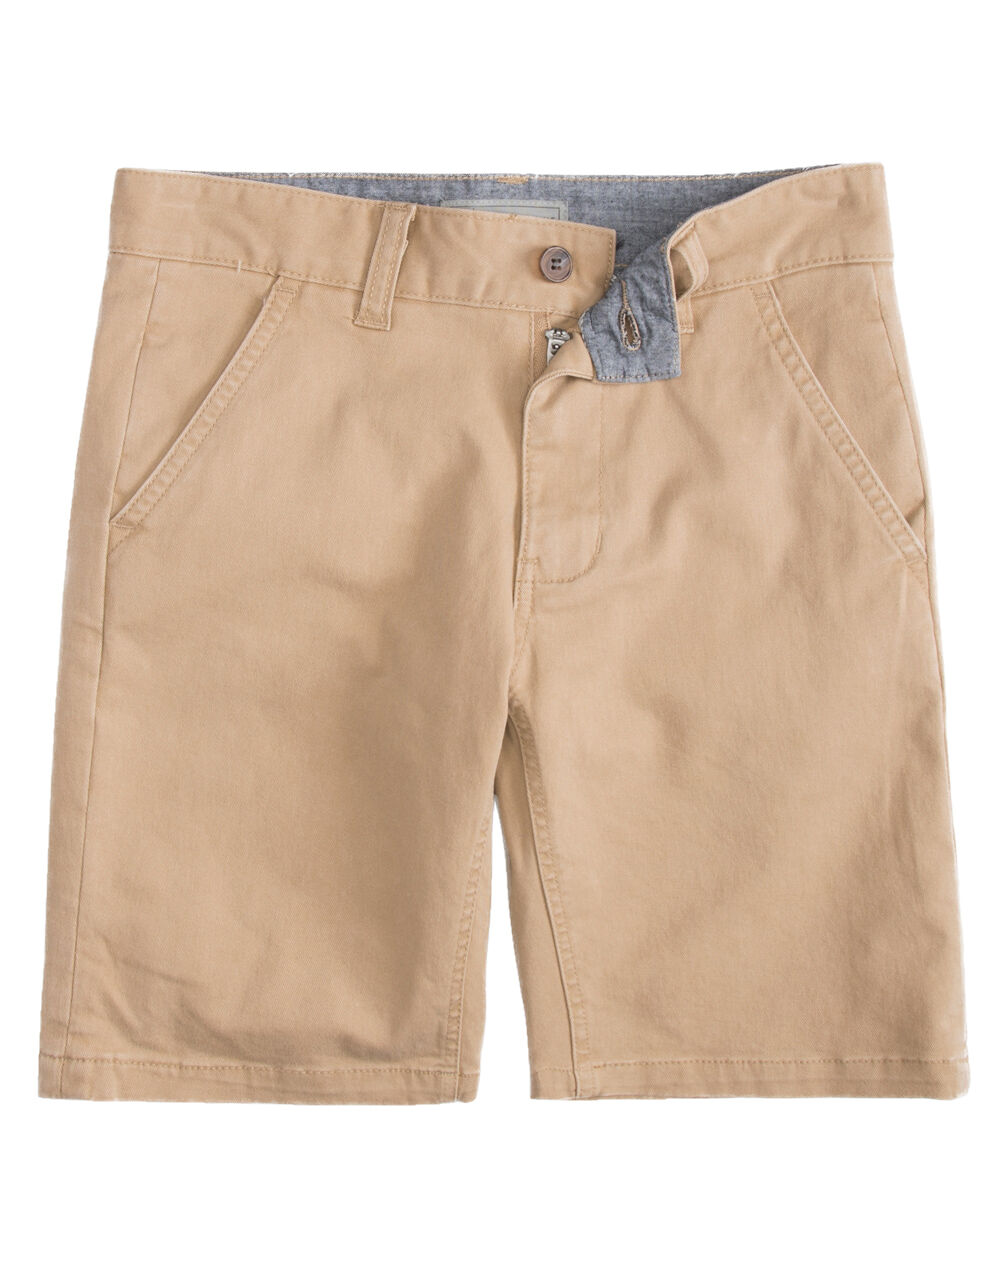 Image of CHARLES AND A HALF LINCOLN STRETCH DARK KHAKI BOYS SHORTS